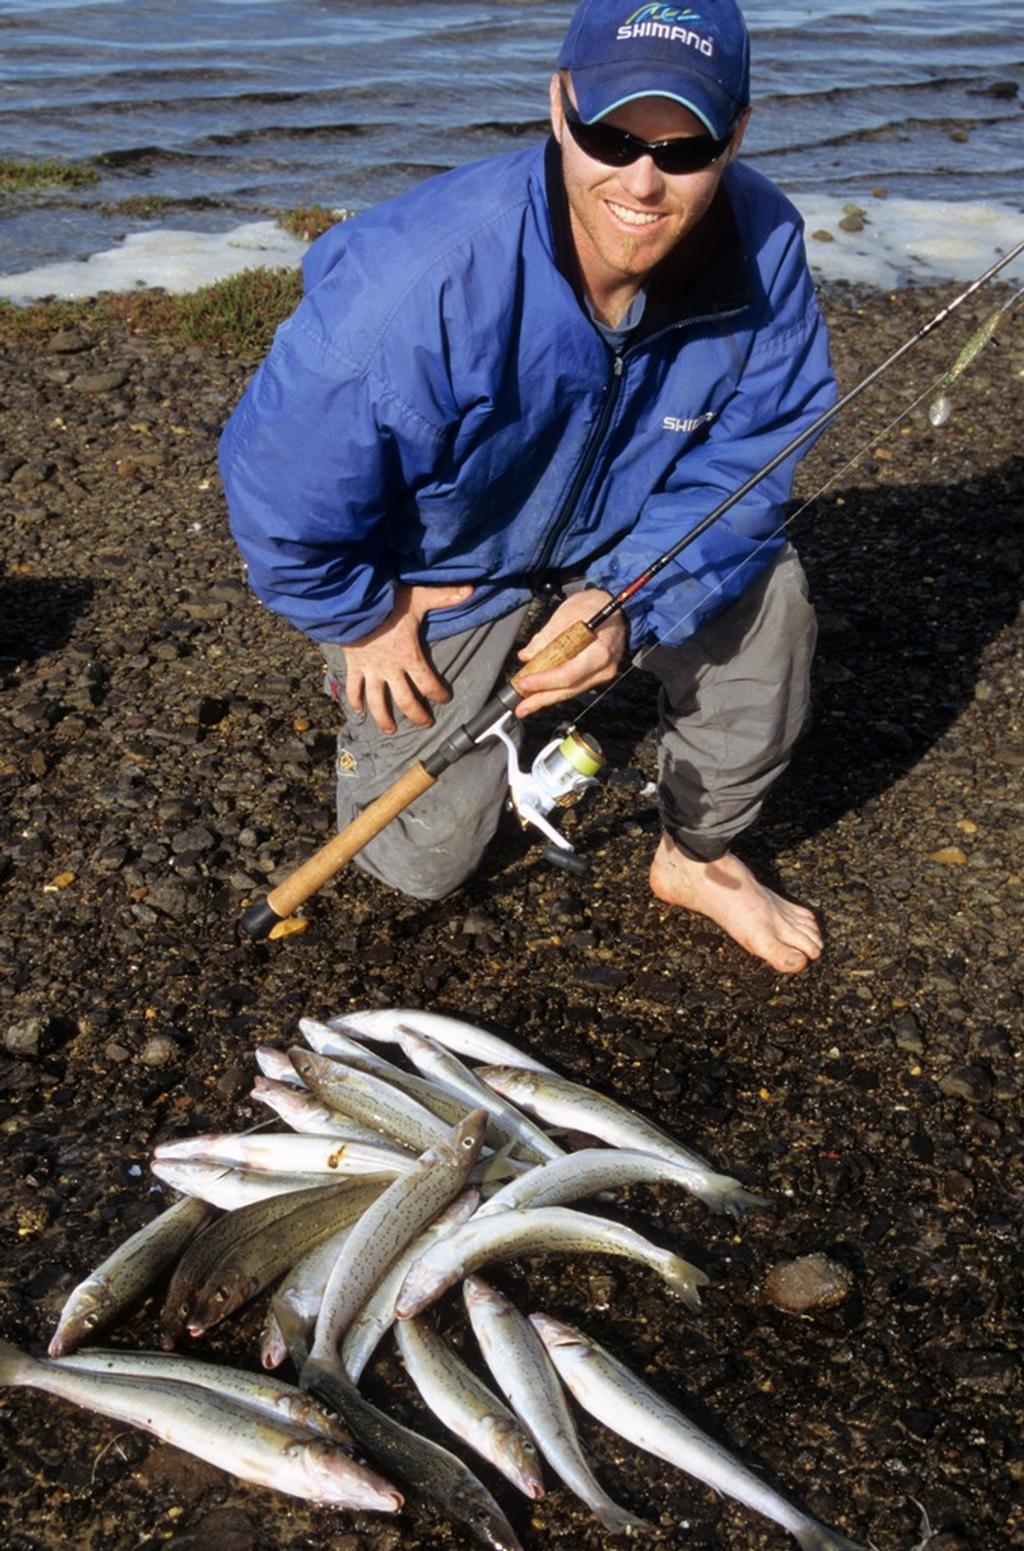 The author with a haul of fish caught from close-in grounds. Great fun and top tucker! © Shane Murton